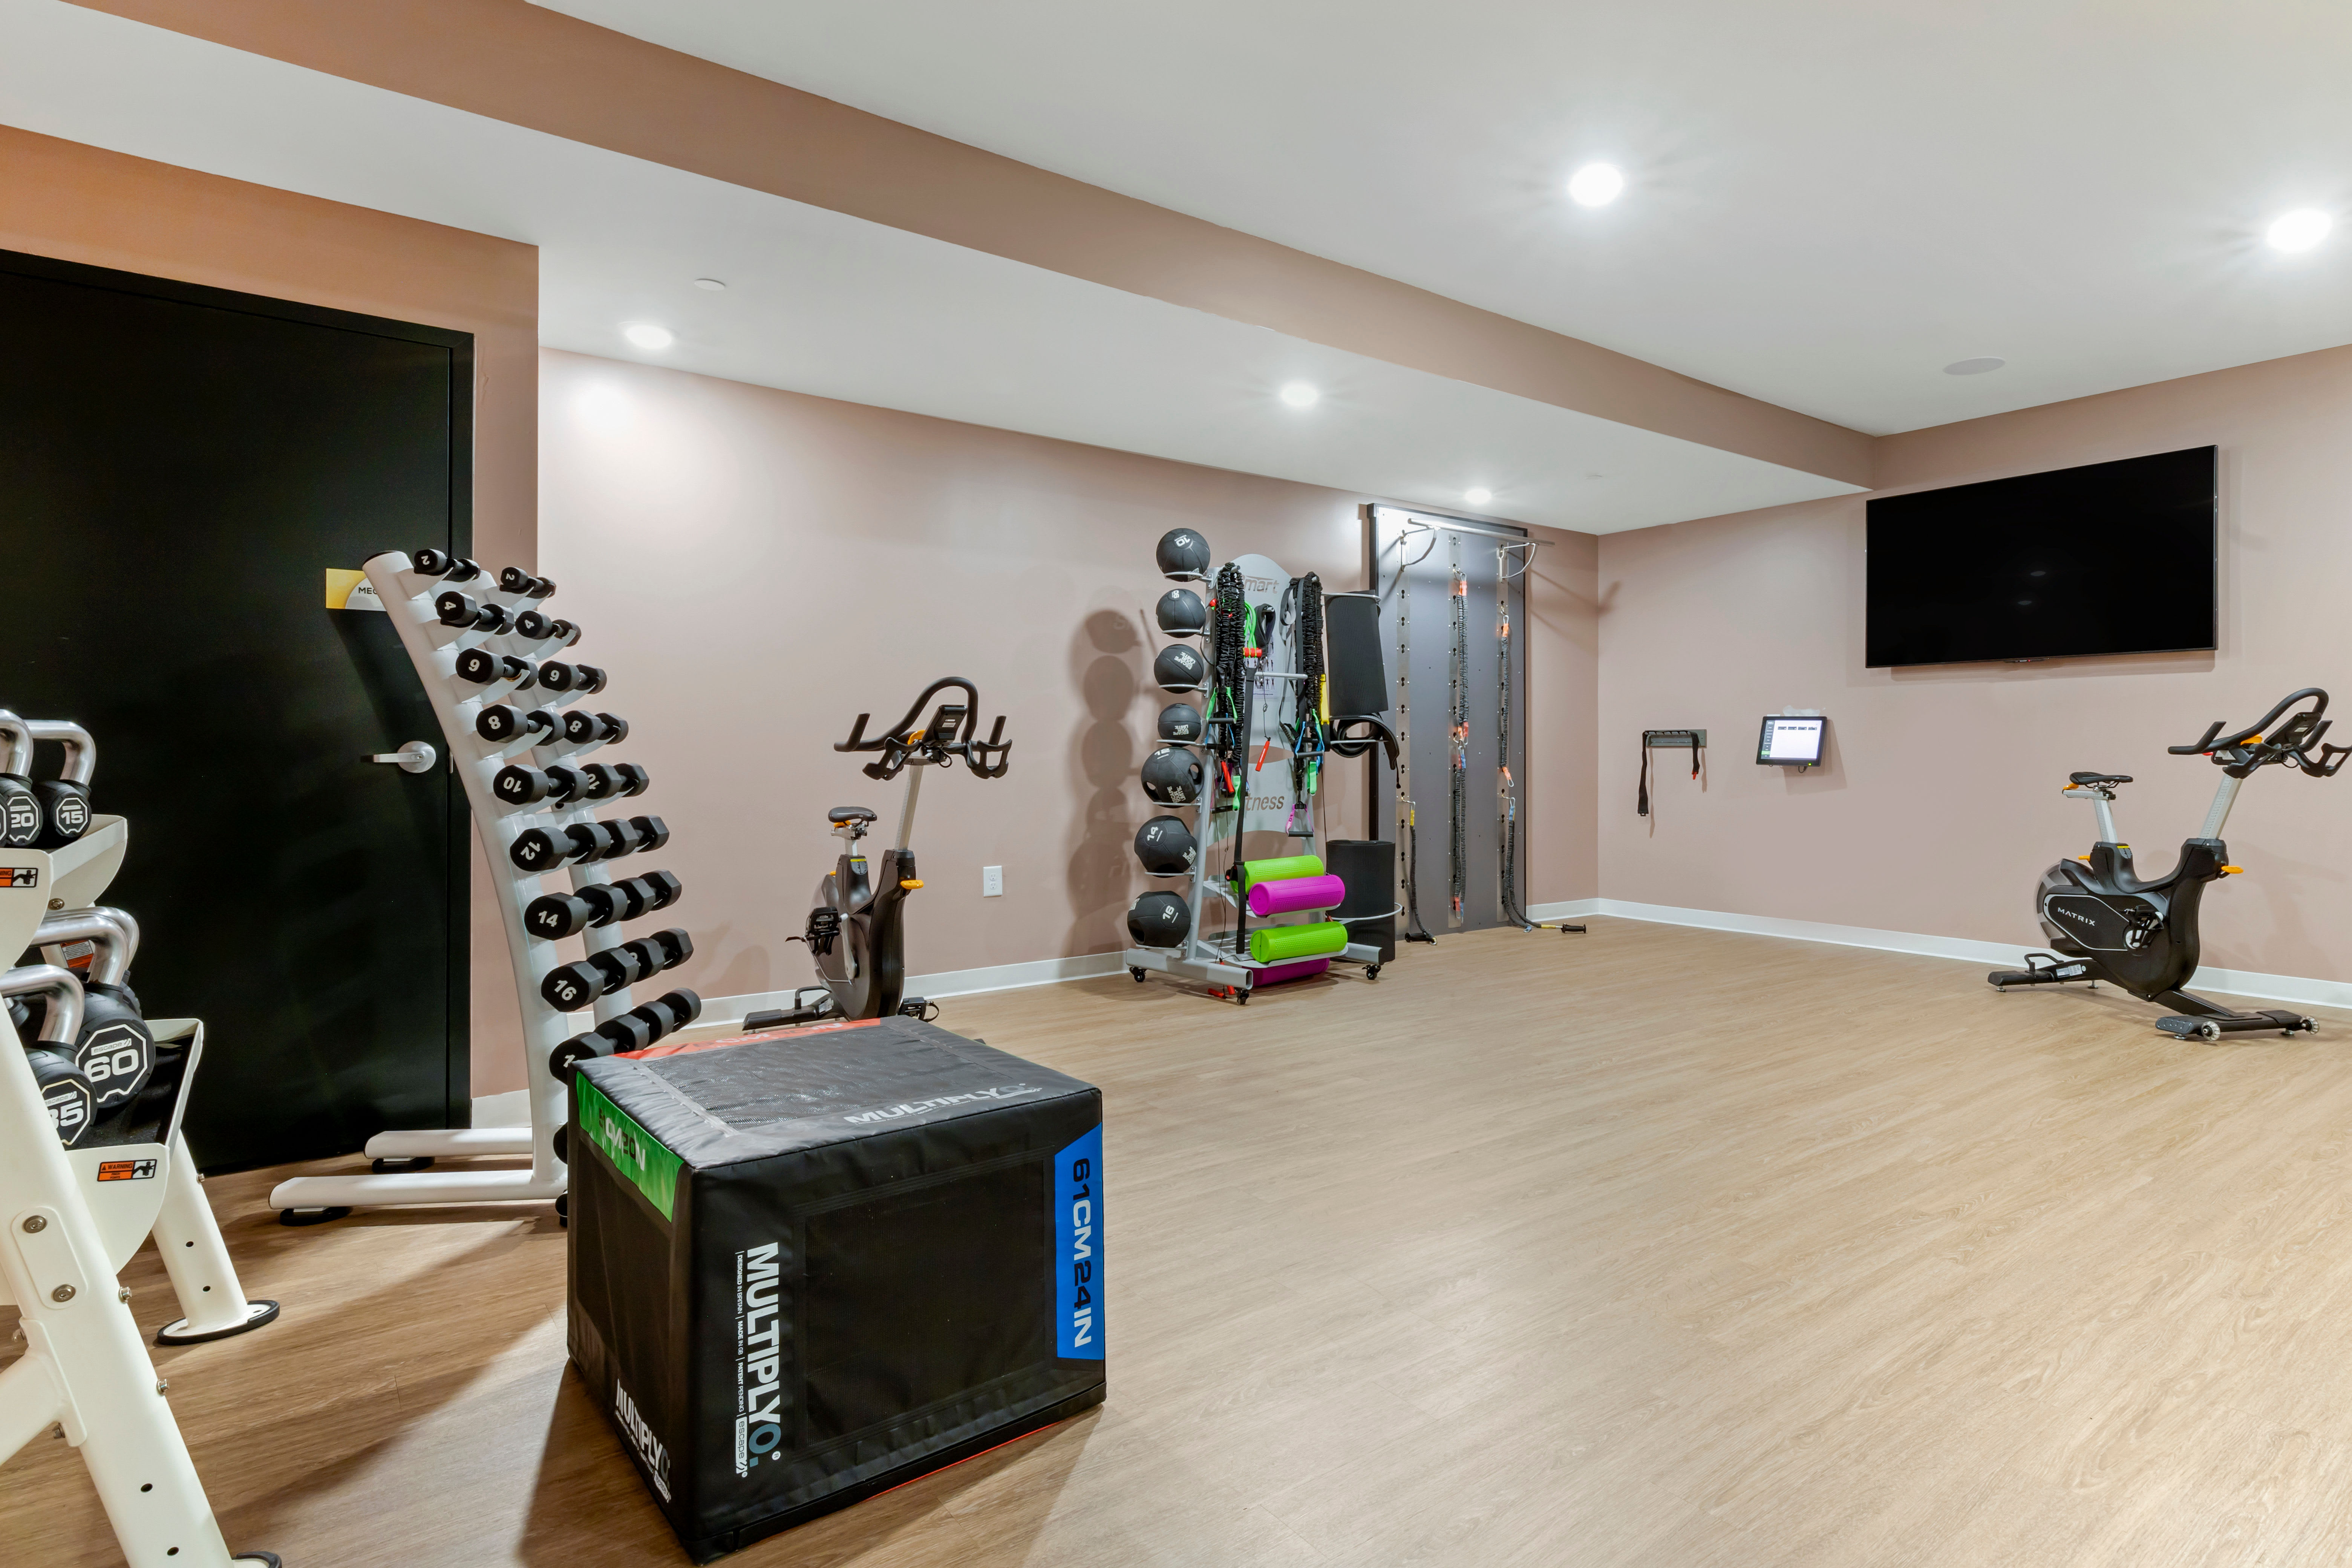 Residents checking out the fitness center at UNCOMMON Raleigh in Raleigh, North Carolina